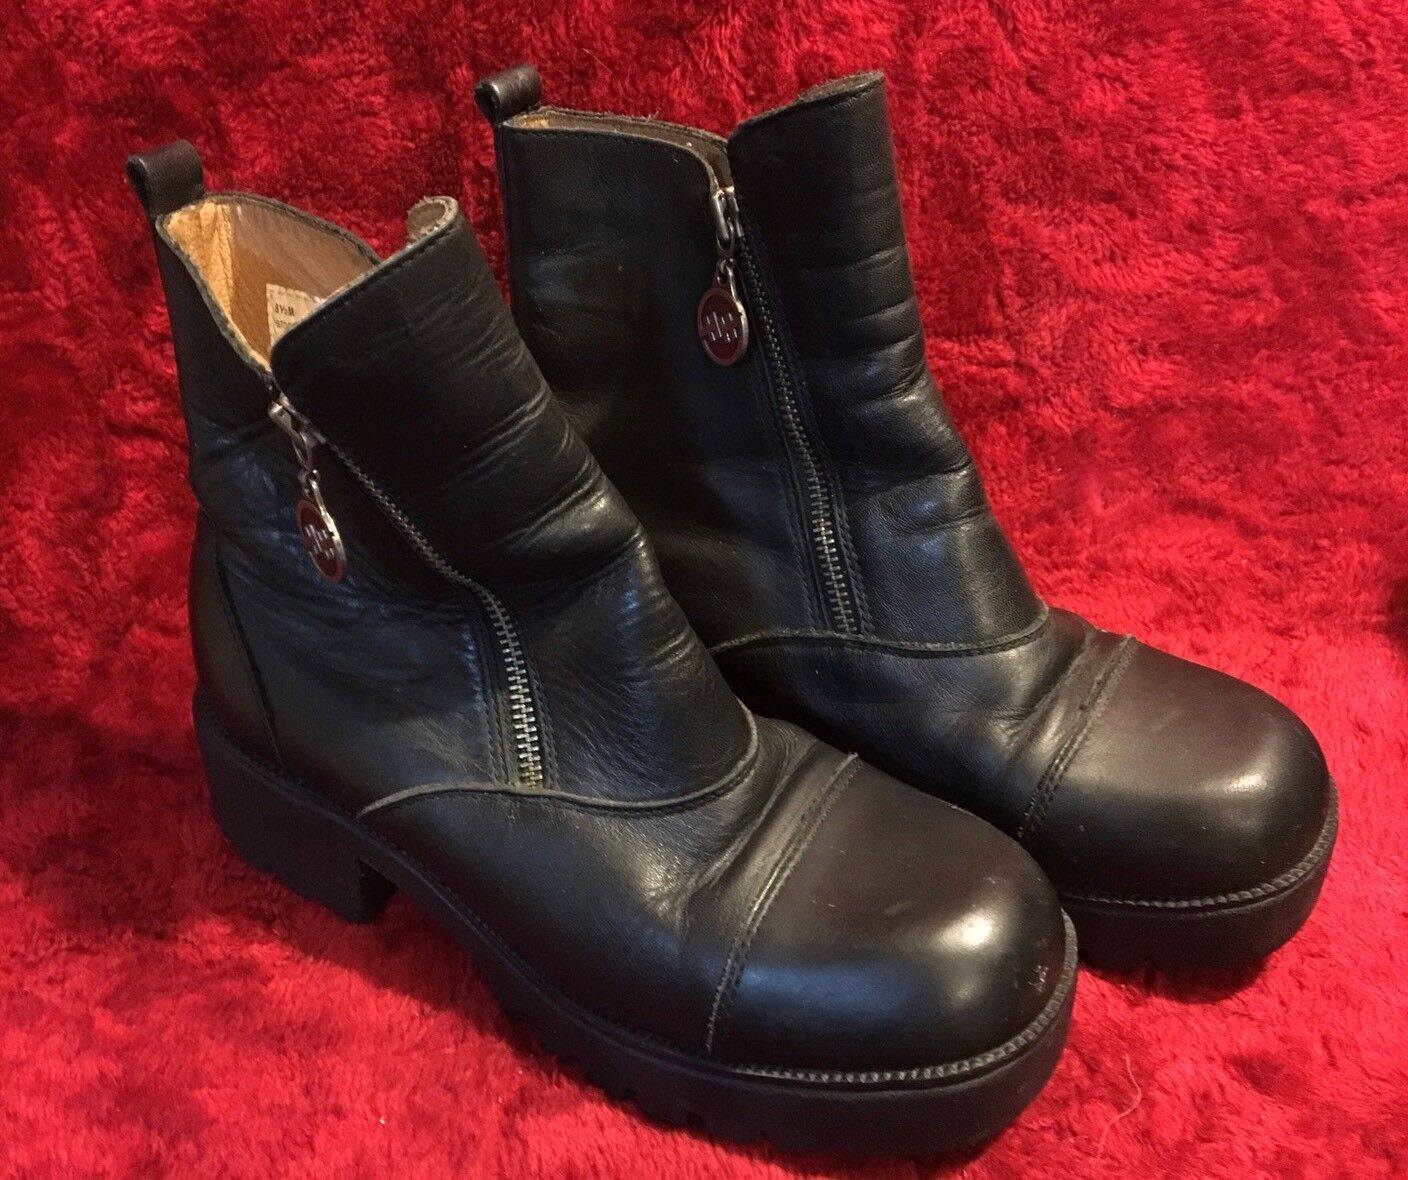 Women's Size 8.5 M Leather, Double Zipper Motorcycle Riding Boots